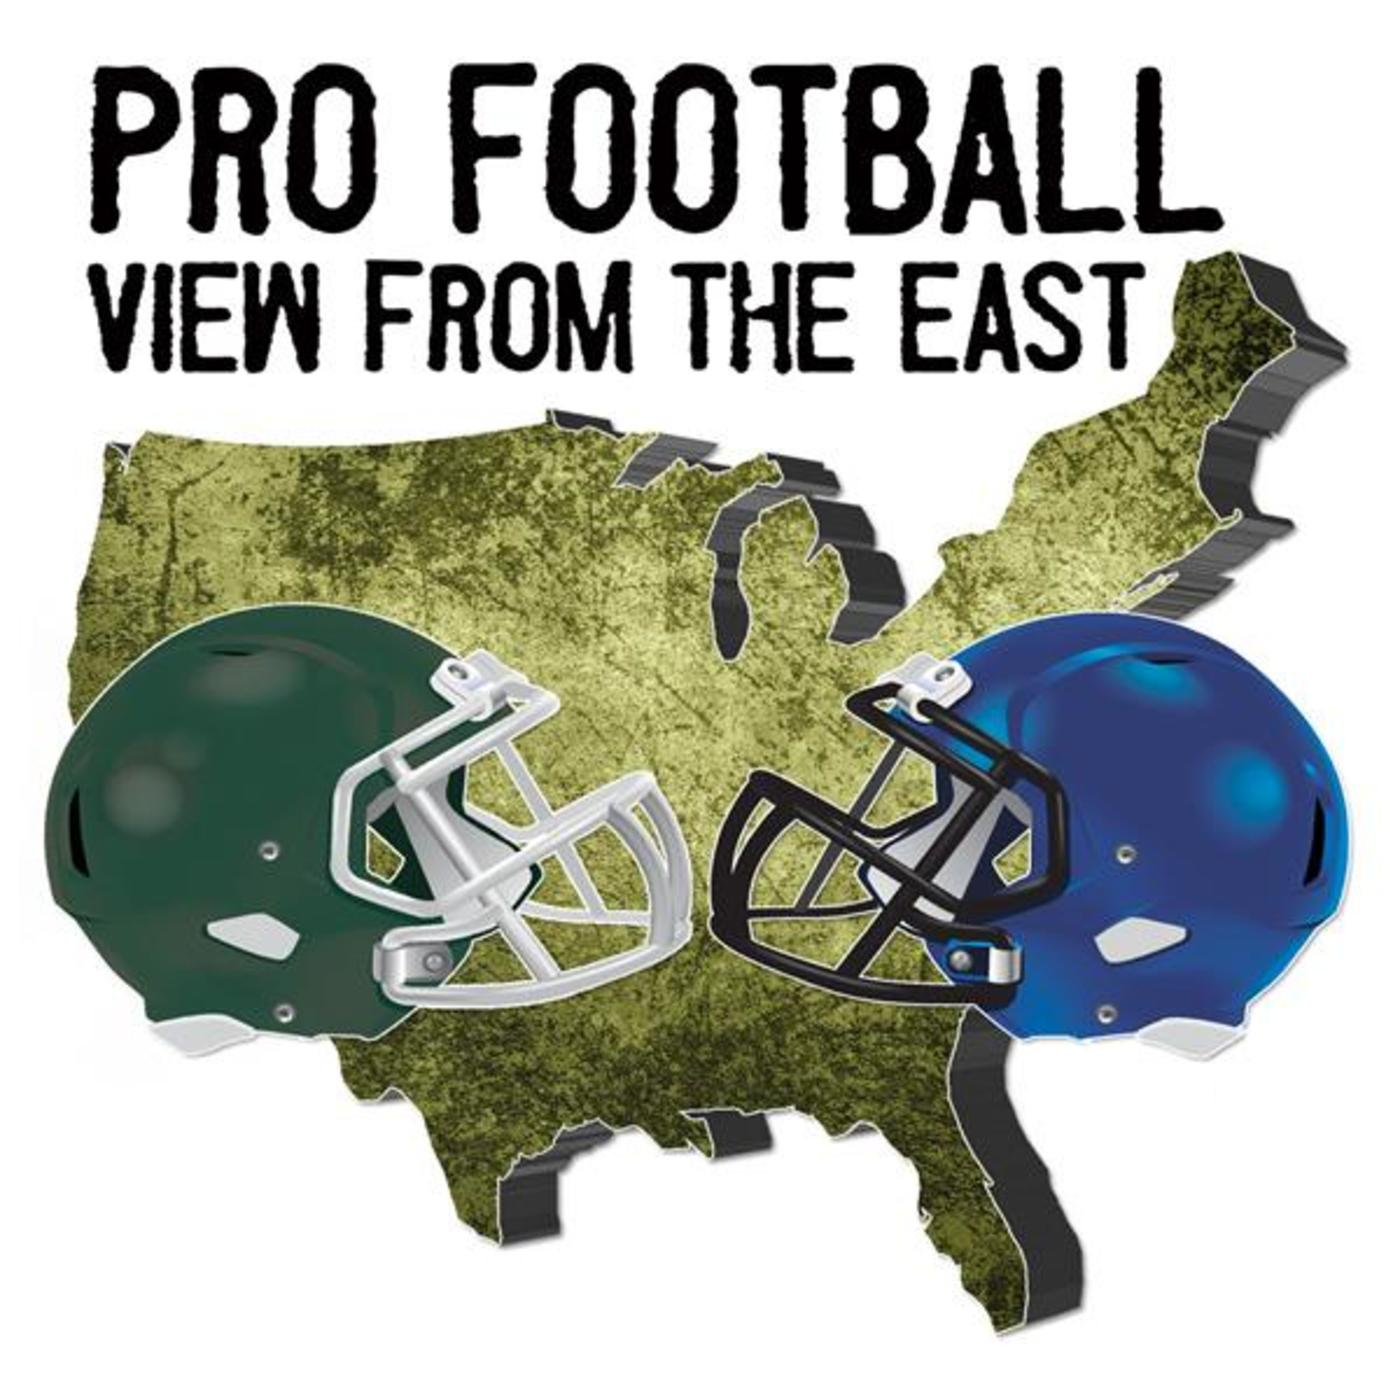 Pro Football View From The East